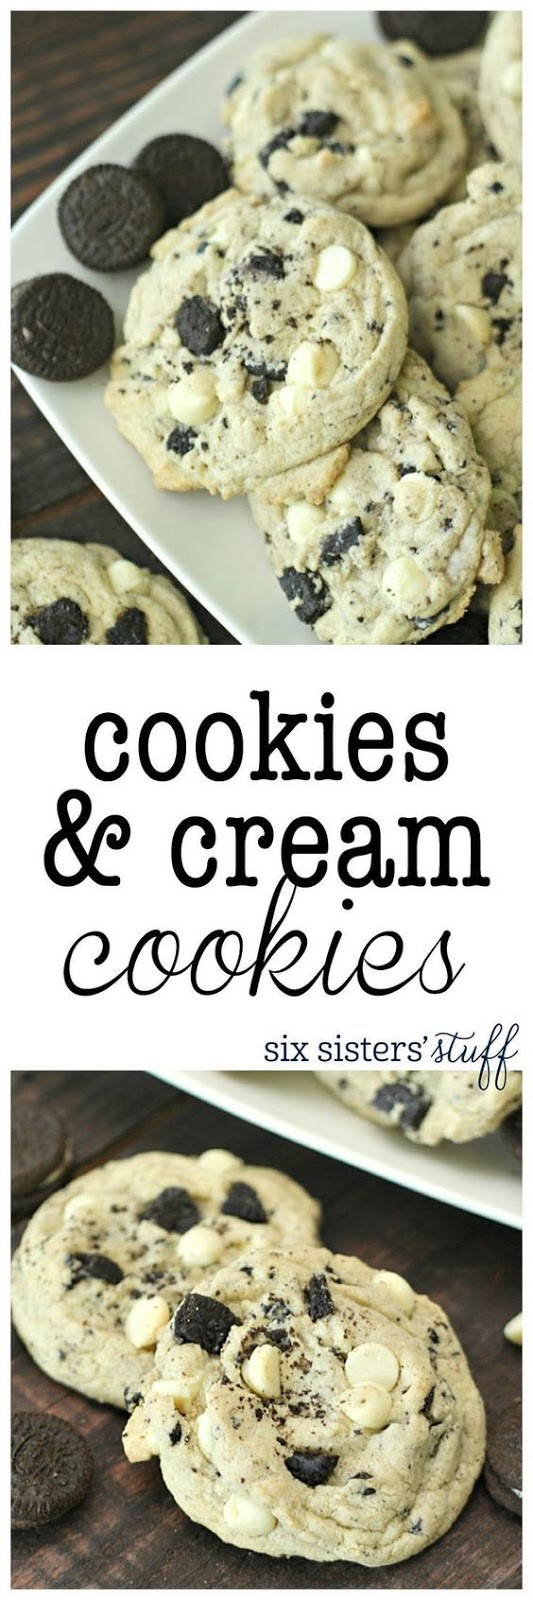 COOKIES AND CREAM COOKIES   #DESSERTS #HEALTHYFOOD #EASYRECIPES #DINNER #LAUCH #DELICIOUS #EASY #HOLIDAYS #RECIPE #SPECIALDIET #WORLDCUISINE #CAKE #APPETIZERS #HEALTHYRECIPES #DRINKS #COOKINGMETHOD #ITALIANRECIPES #MEAT #VEGANRECIPES #COOKIES #PASTA #FRUIT #SALAD #SOUPAPPETIZERS #NONALCOHOLICDRINKS #MEALPLANNING #VEGETABLES #SOUP #PASTRY #CHOCOLATE #DAIRY #ALCOHOLICDRINKS #BULGURSALAD #BAKING #SNACKS #BEEFRECIPES #MEATAPPETIZERS #MEXICANRECIPES #BREAD #ASIANRECIPES #SEAFOODAPPETIZERS #MUFFINS #BREAKFASTANDBRUNCH #CONDIMENTS #CUPCAKES #CHEESE #CHICKENRECIPES #PIE #COFFEE #NOBAKEDESSERTS #HEALTHYSNACKS #SEAFOOD #GRAIN #LUNCHESDINNERS #MEXICAN #QUICKBREAD #LIQUOR